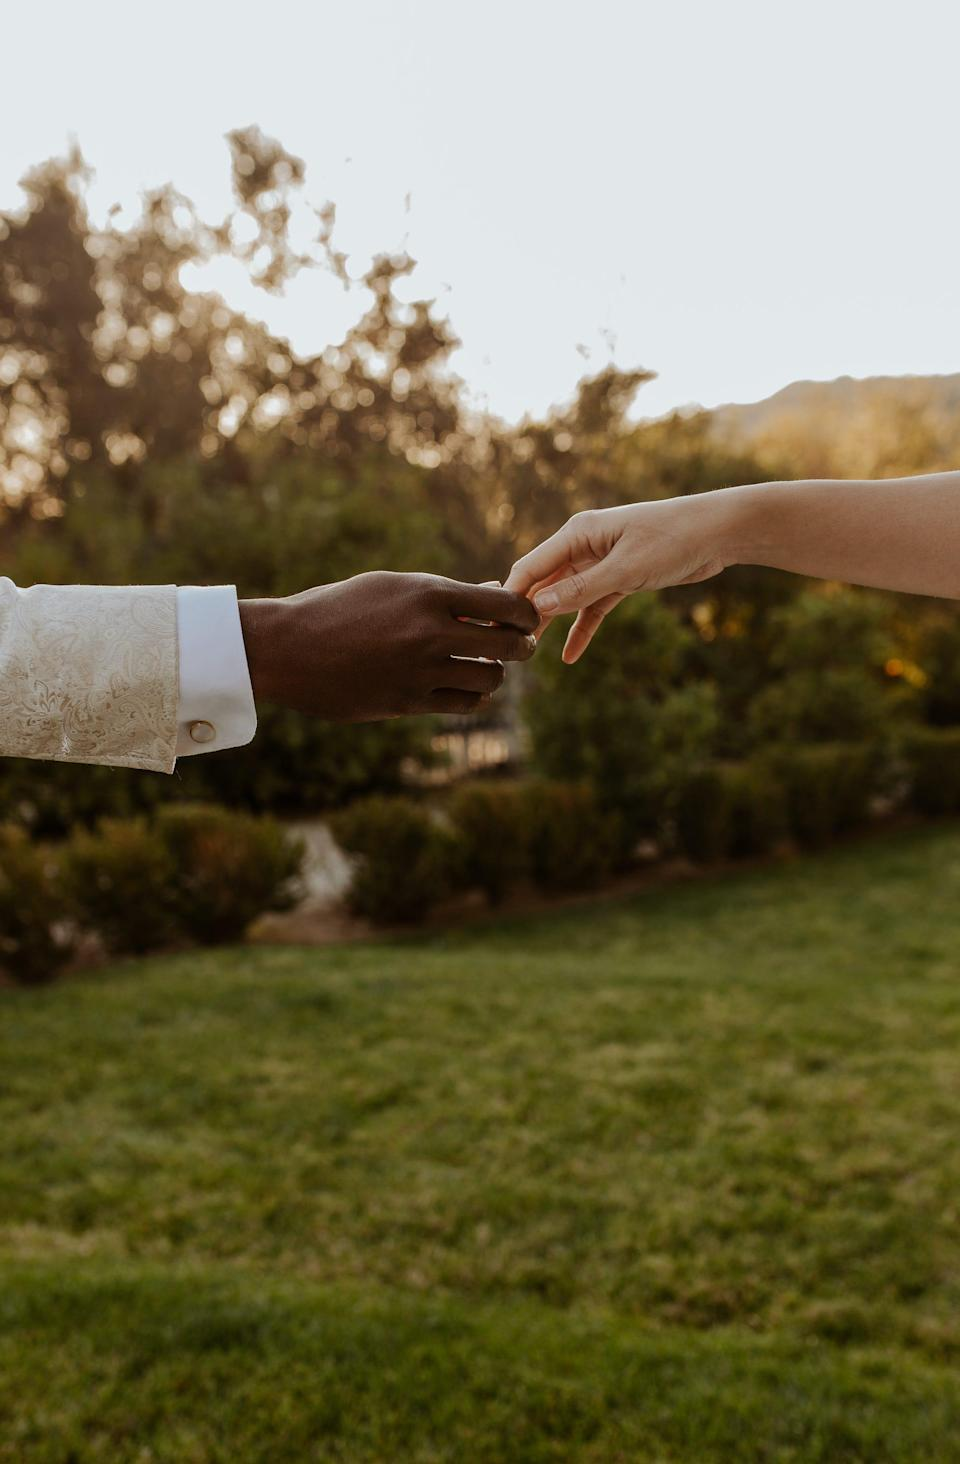 A black hand and a white hand reach towards each other in front of a field.